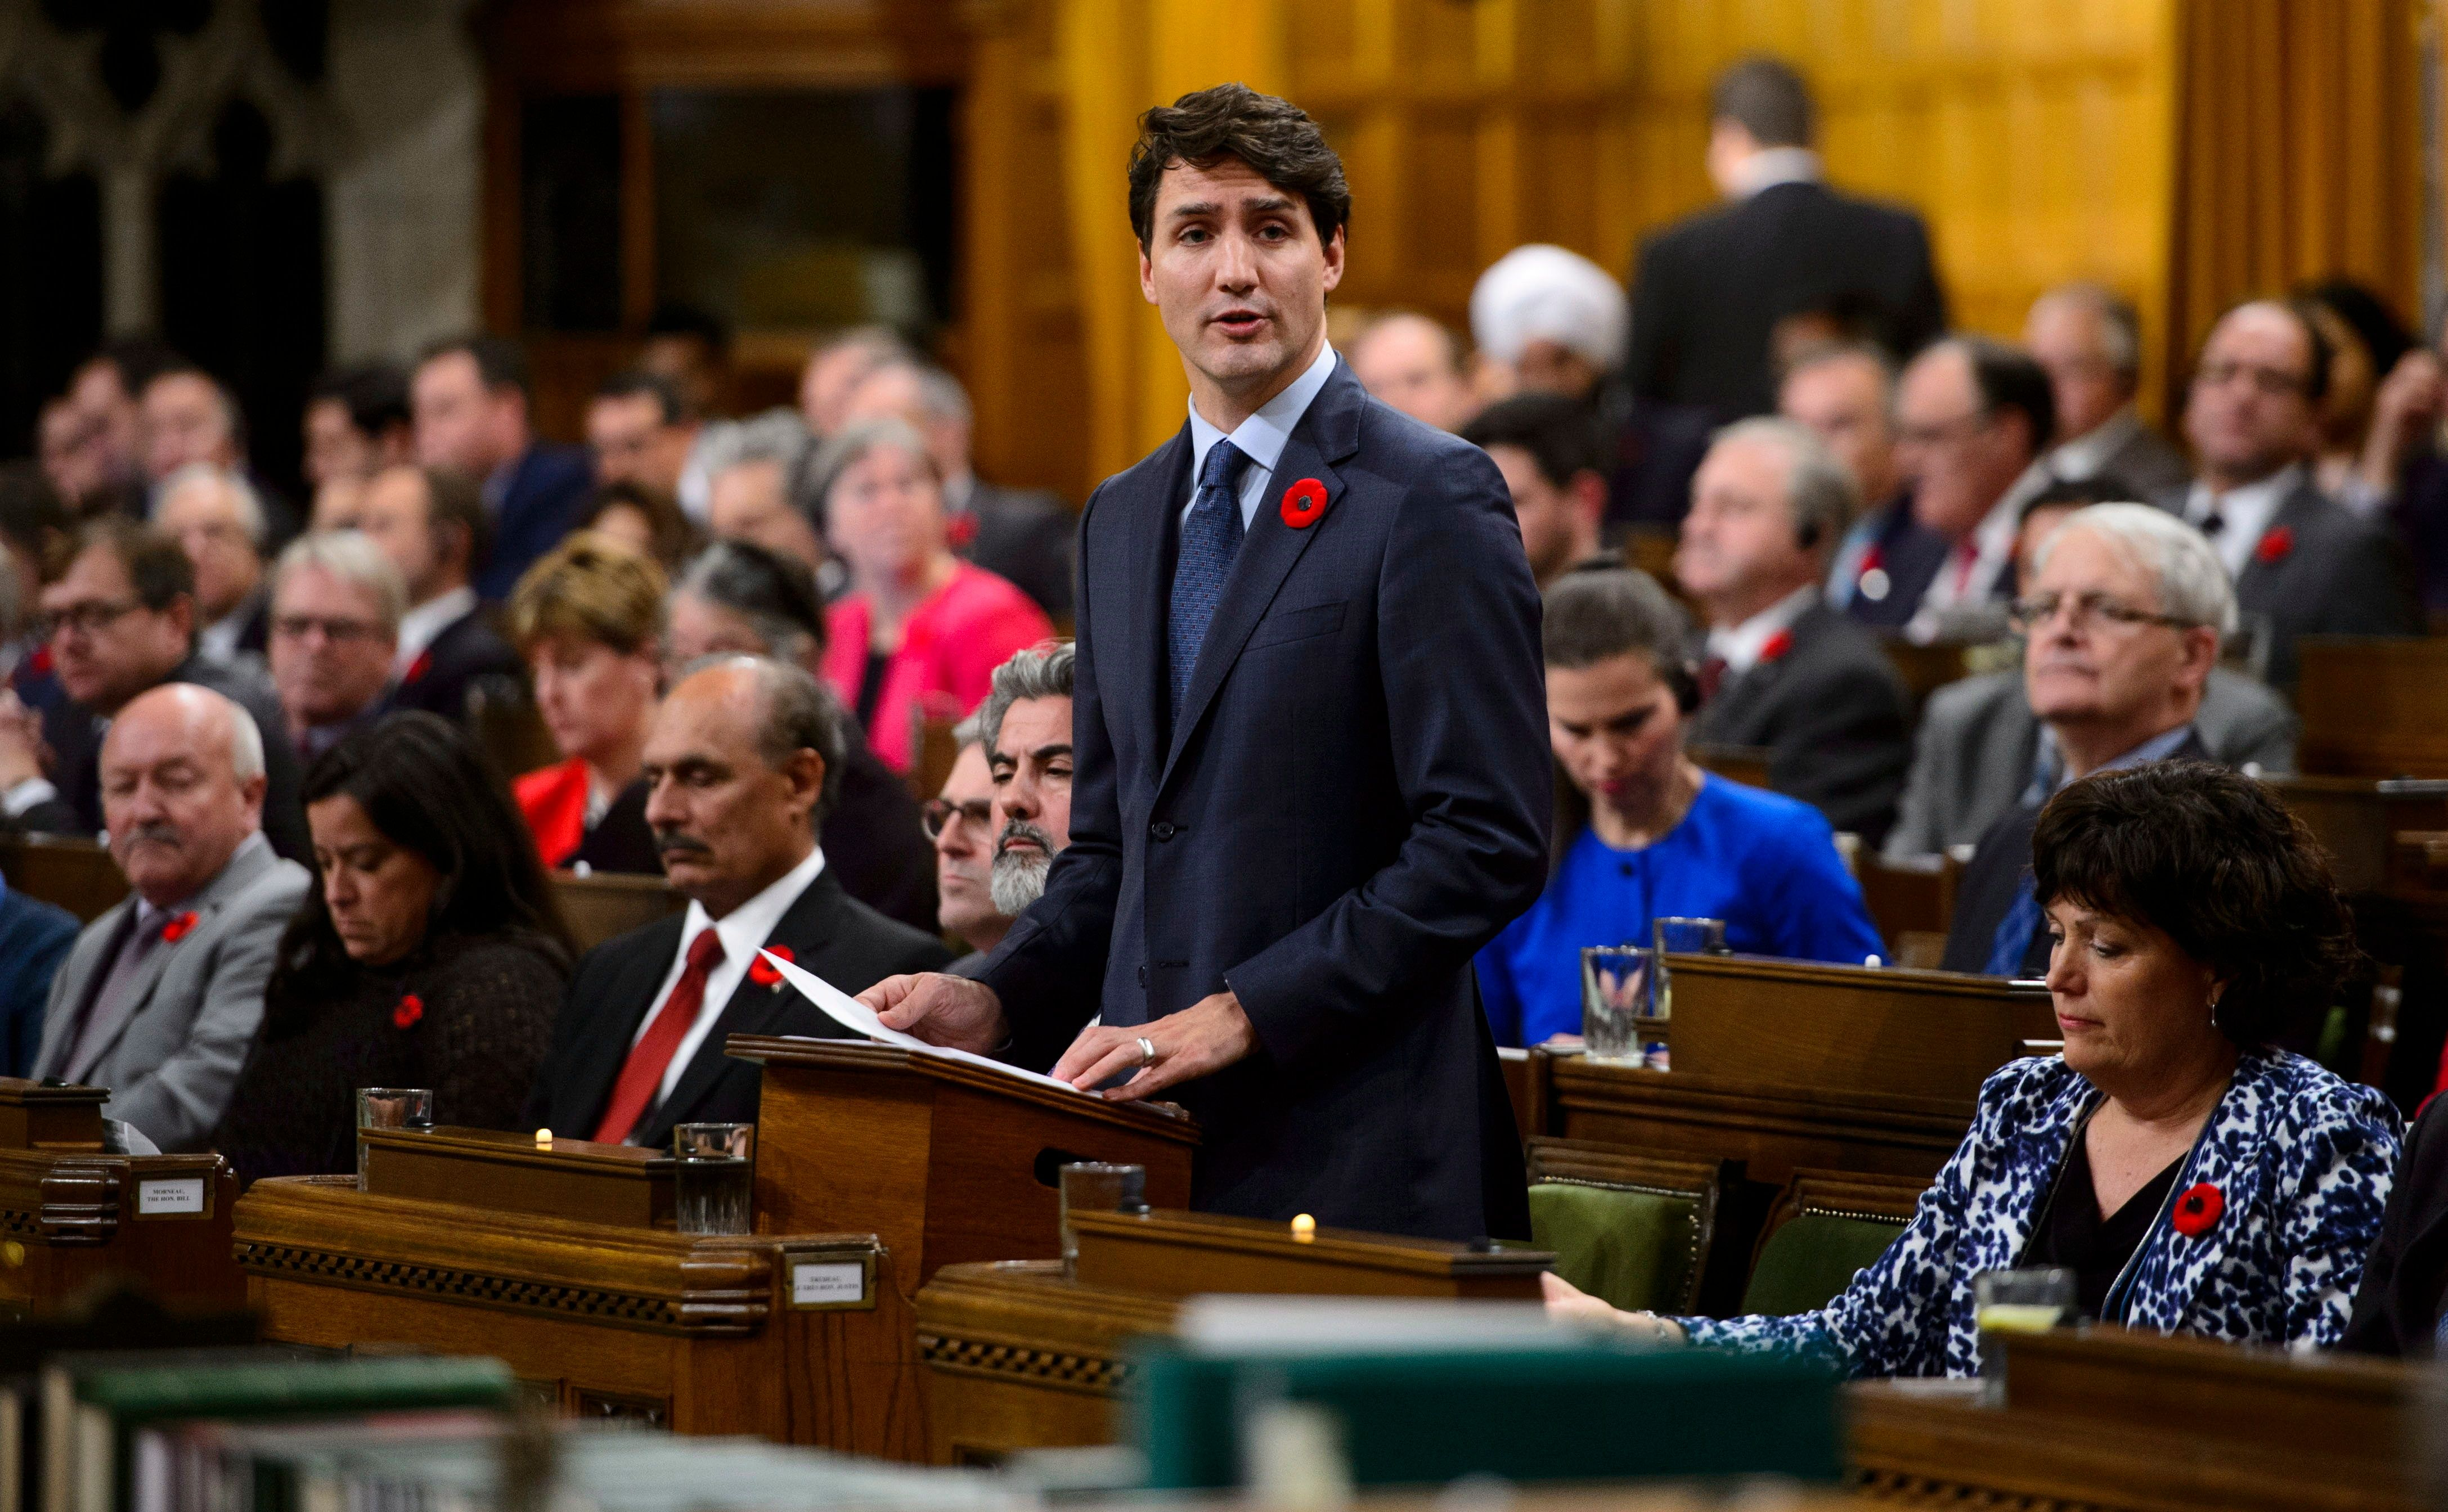 Canadian Prime Minister Justin Trudeau on Nov. 7 delivers a formal apology on behalf of his nation for turning away a ship fu